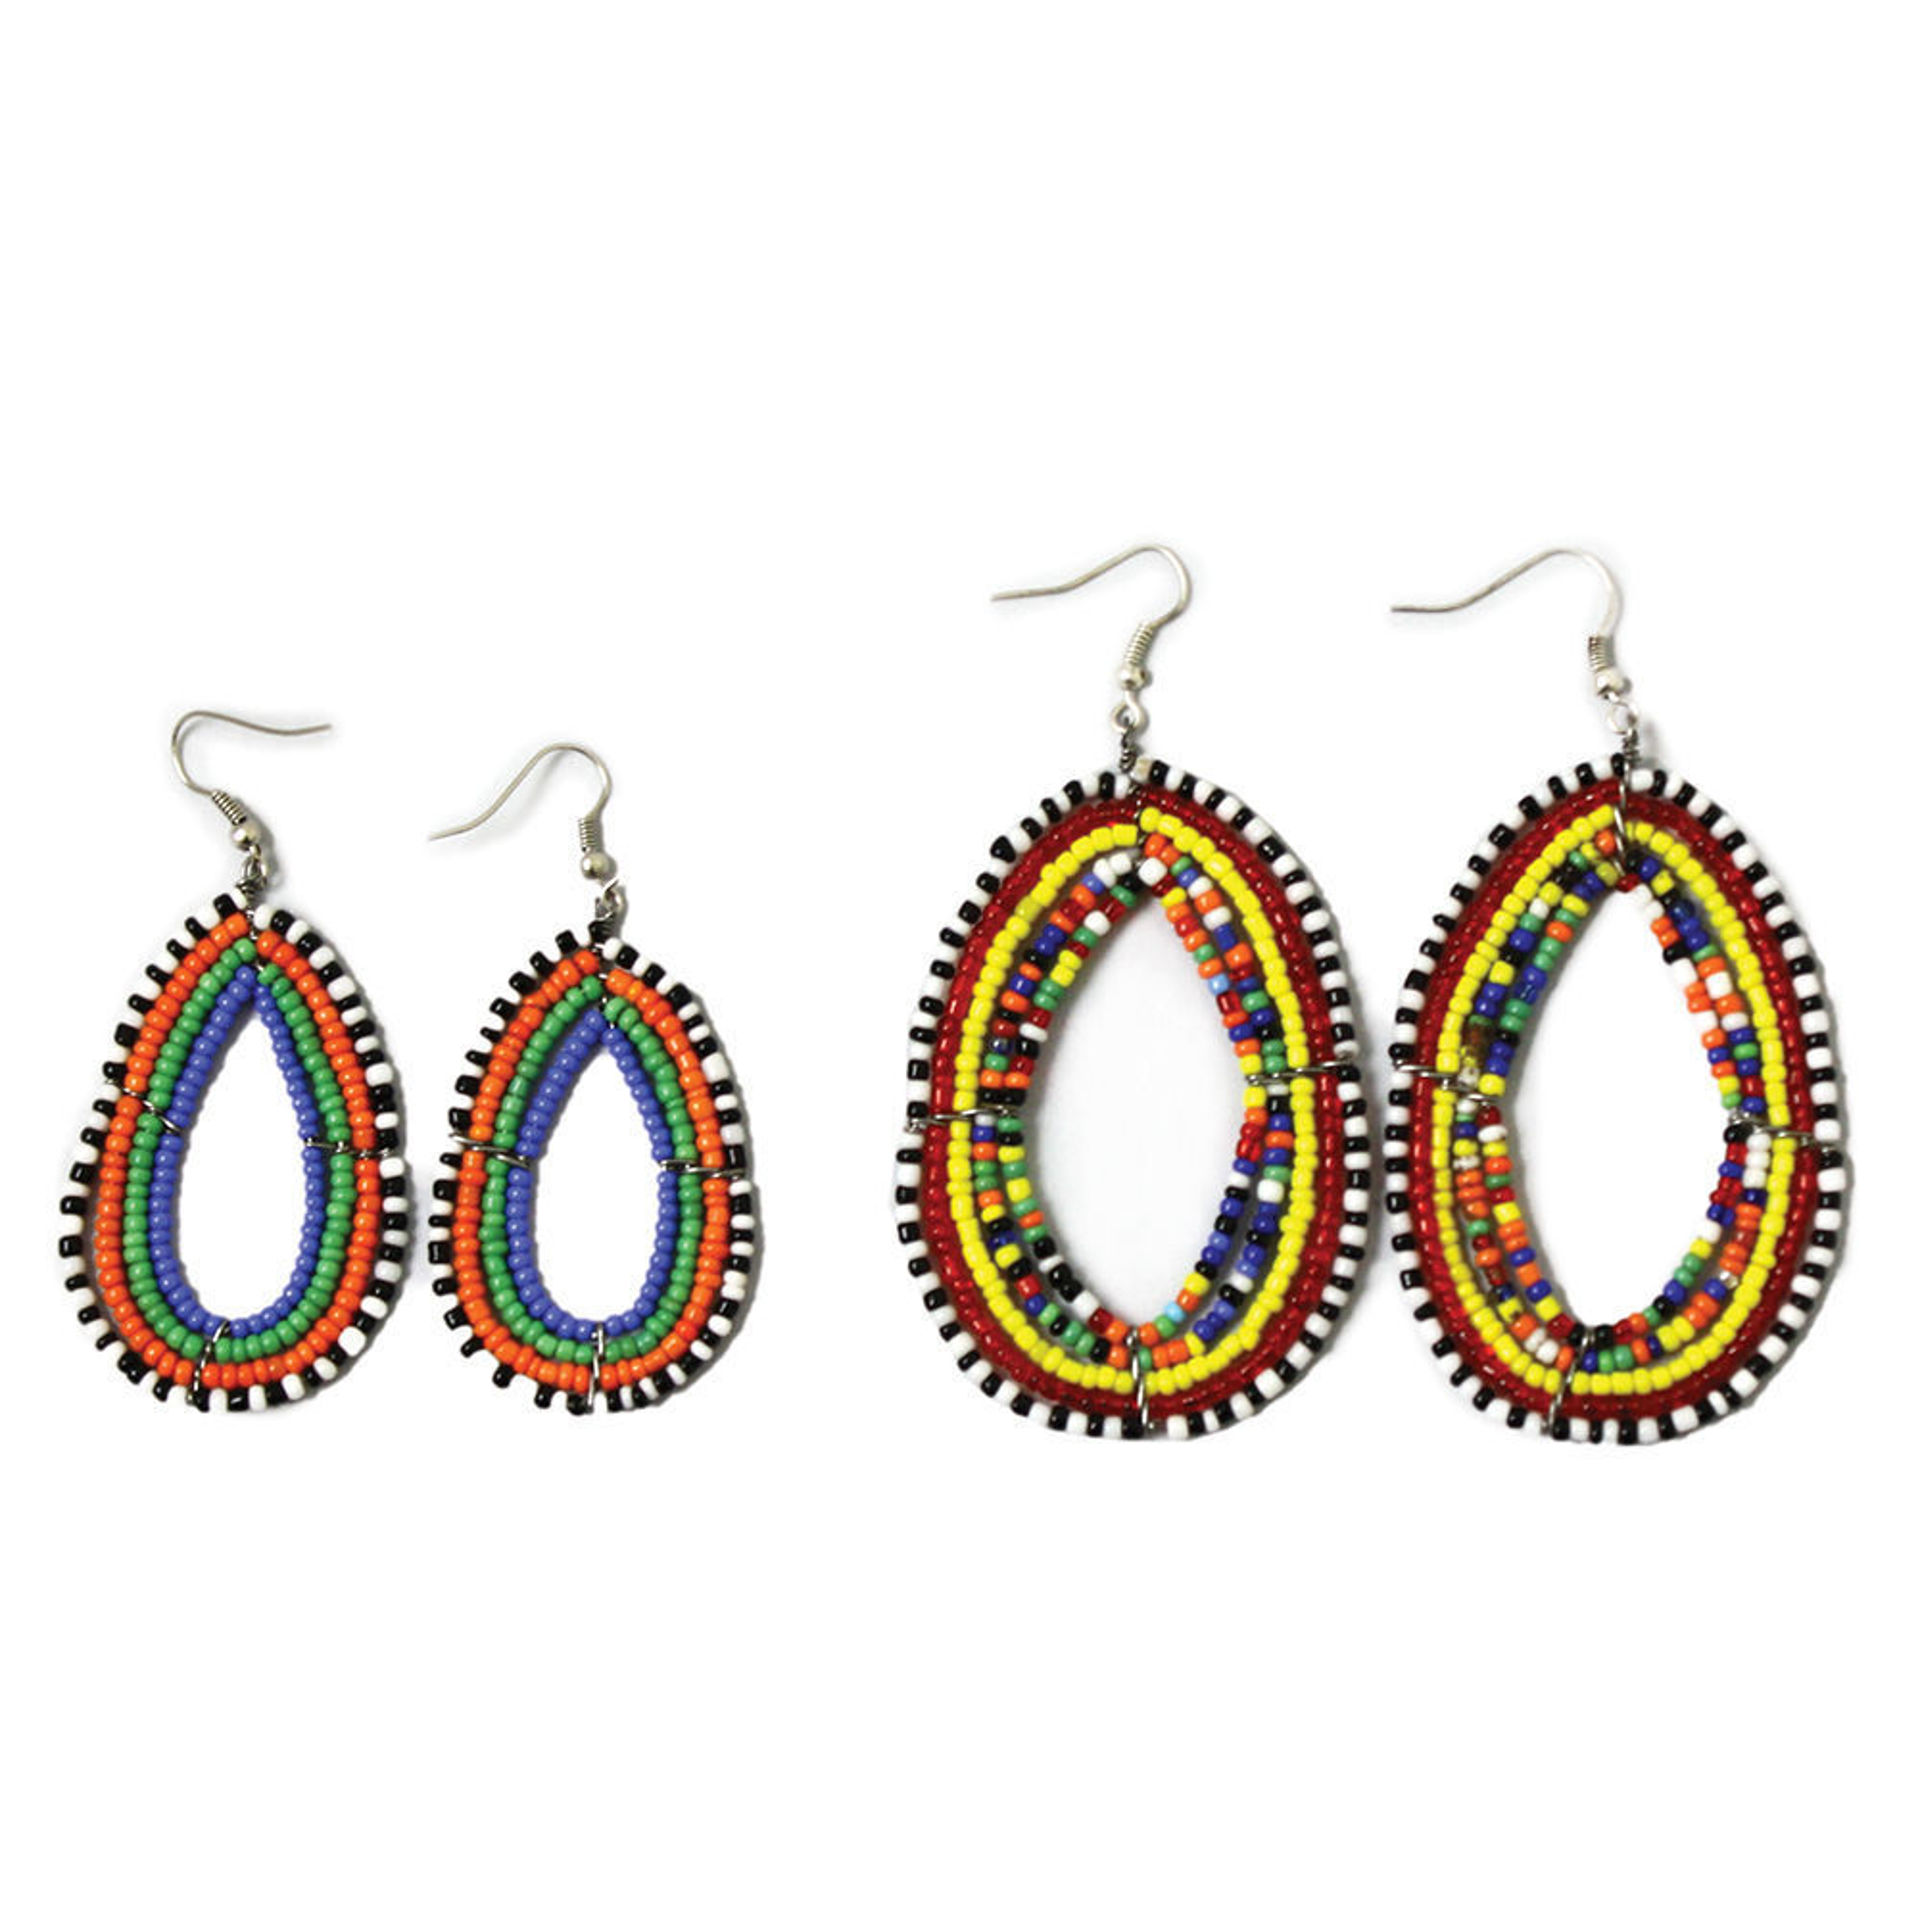 Picture of Maasai Beaded Earrings